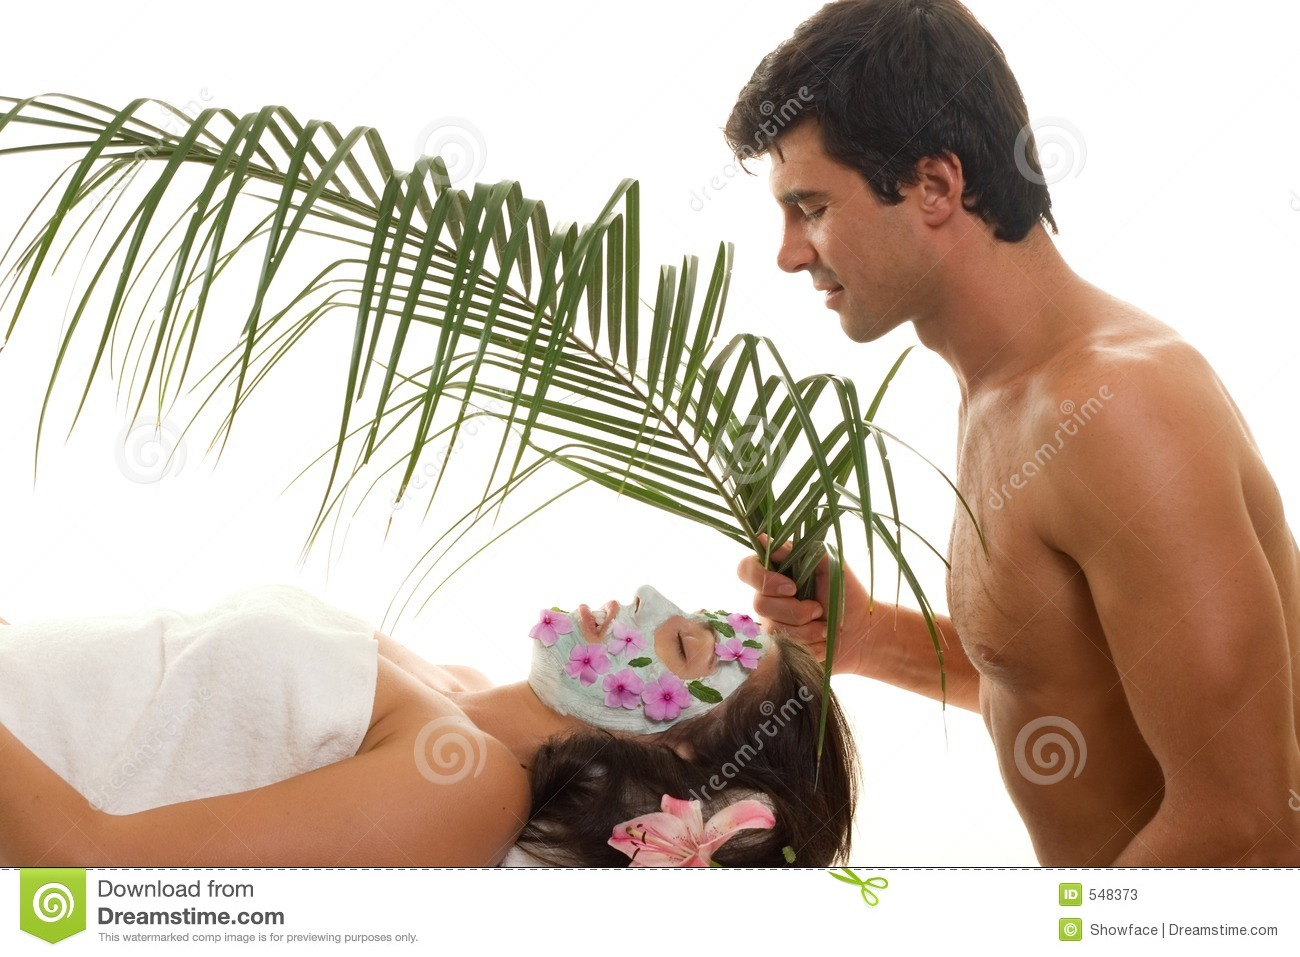 Little luxuries stock photos image 548373 for A little luxury beauty salon